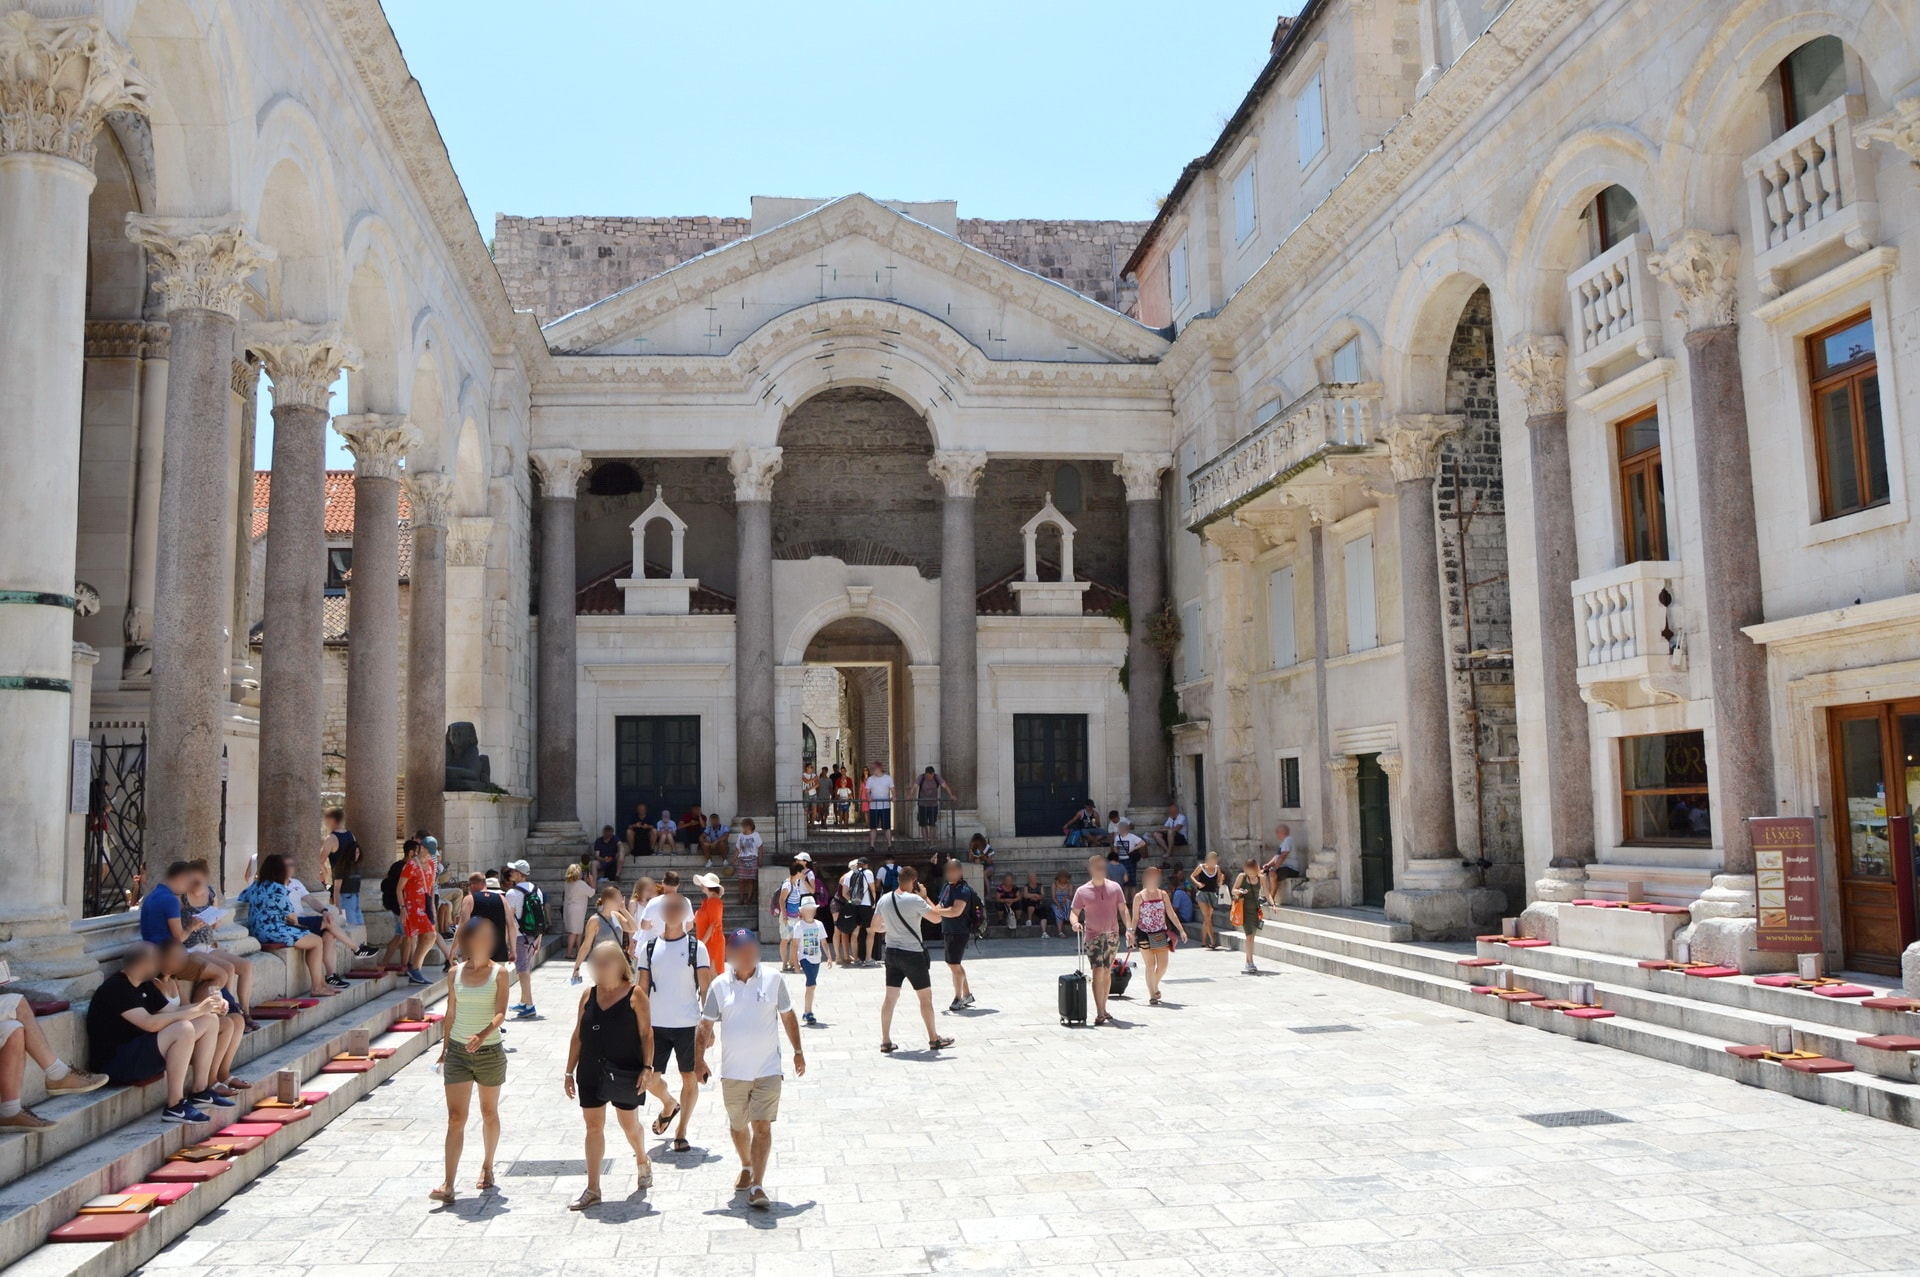 Peristyle Square in the heart of the Diocletian's Palace ruins